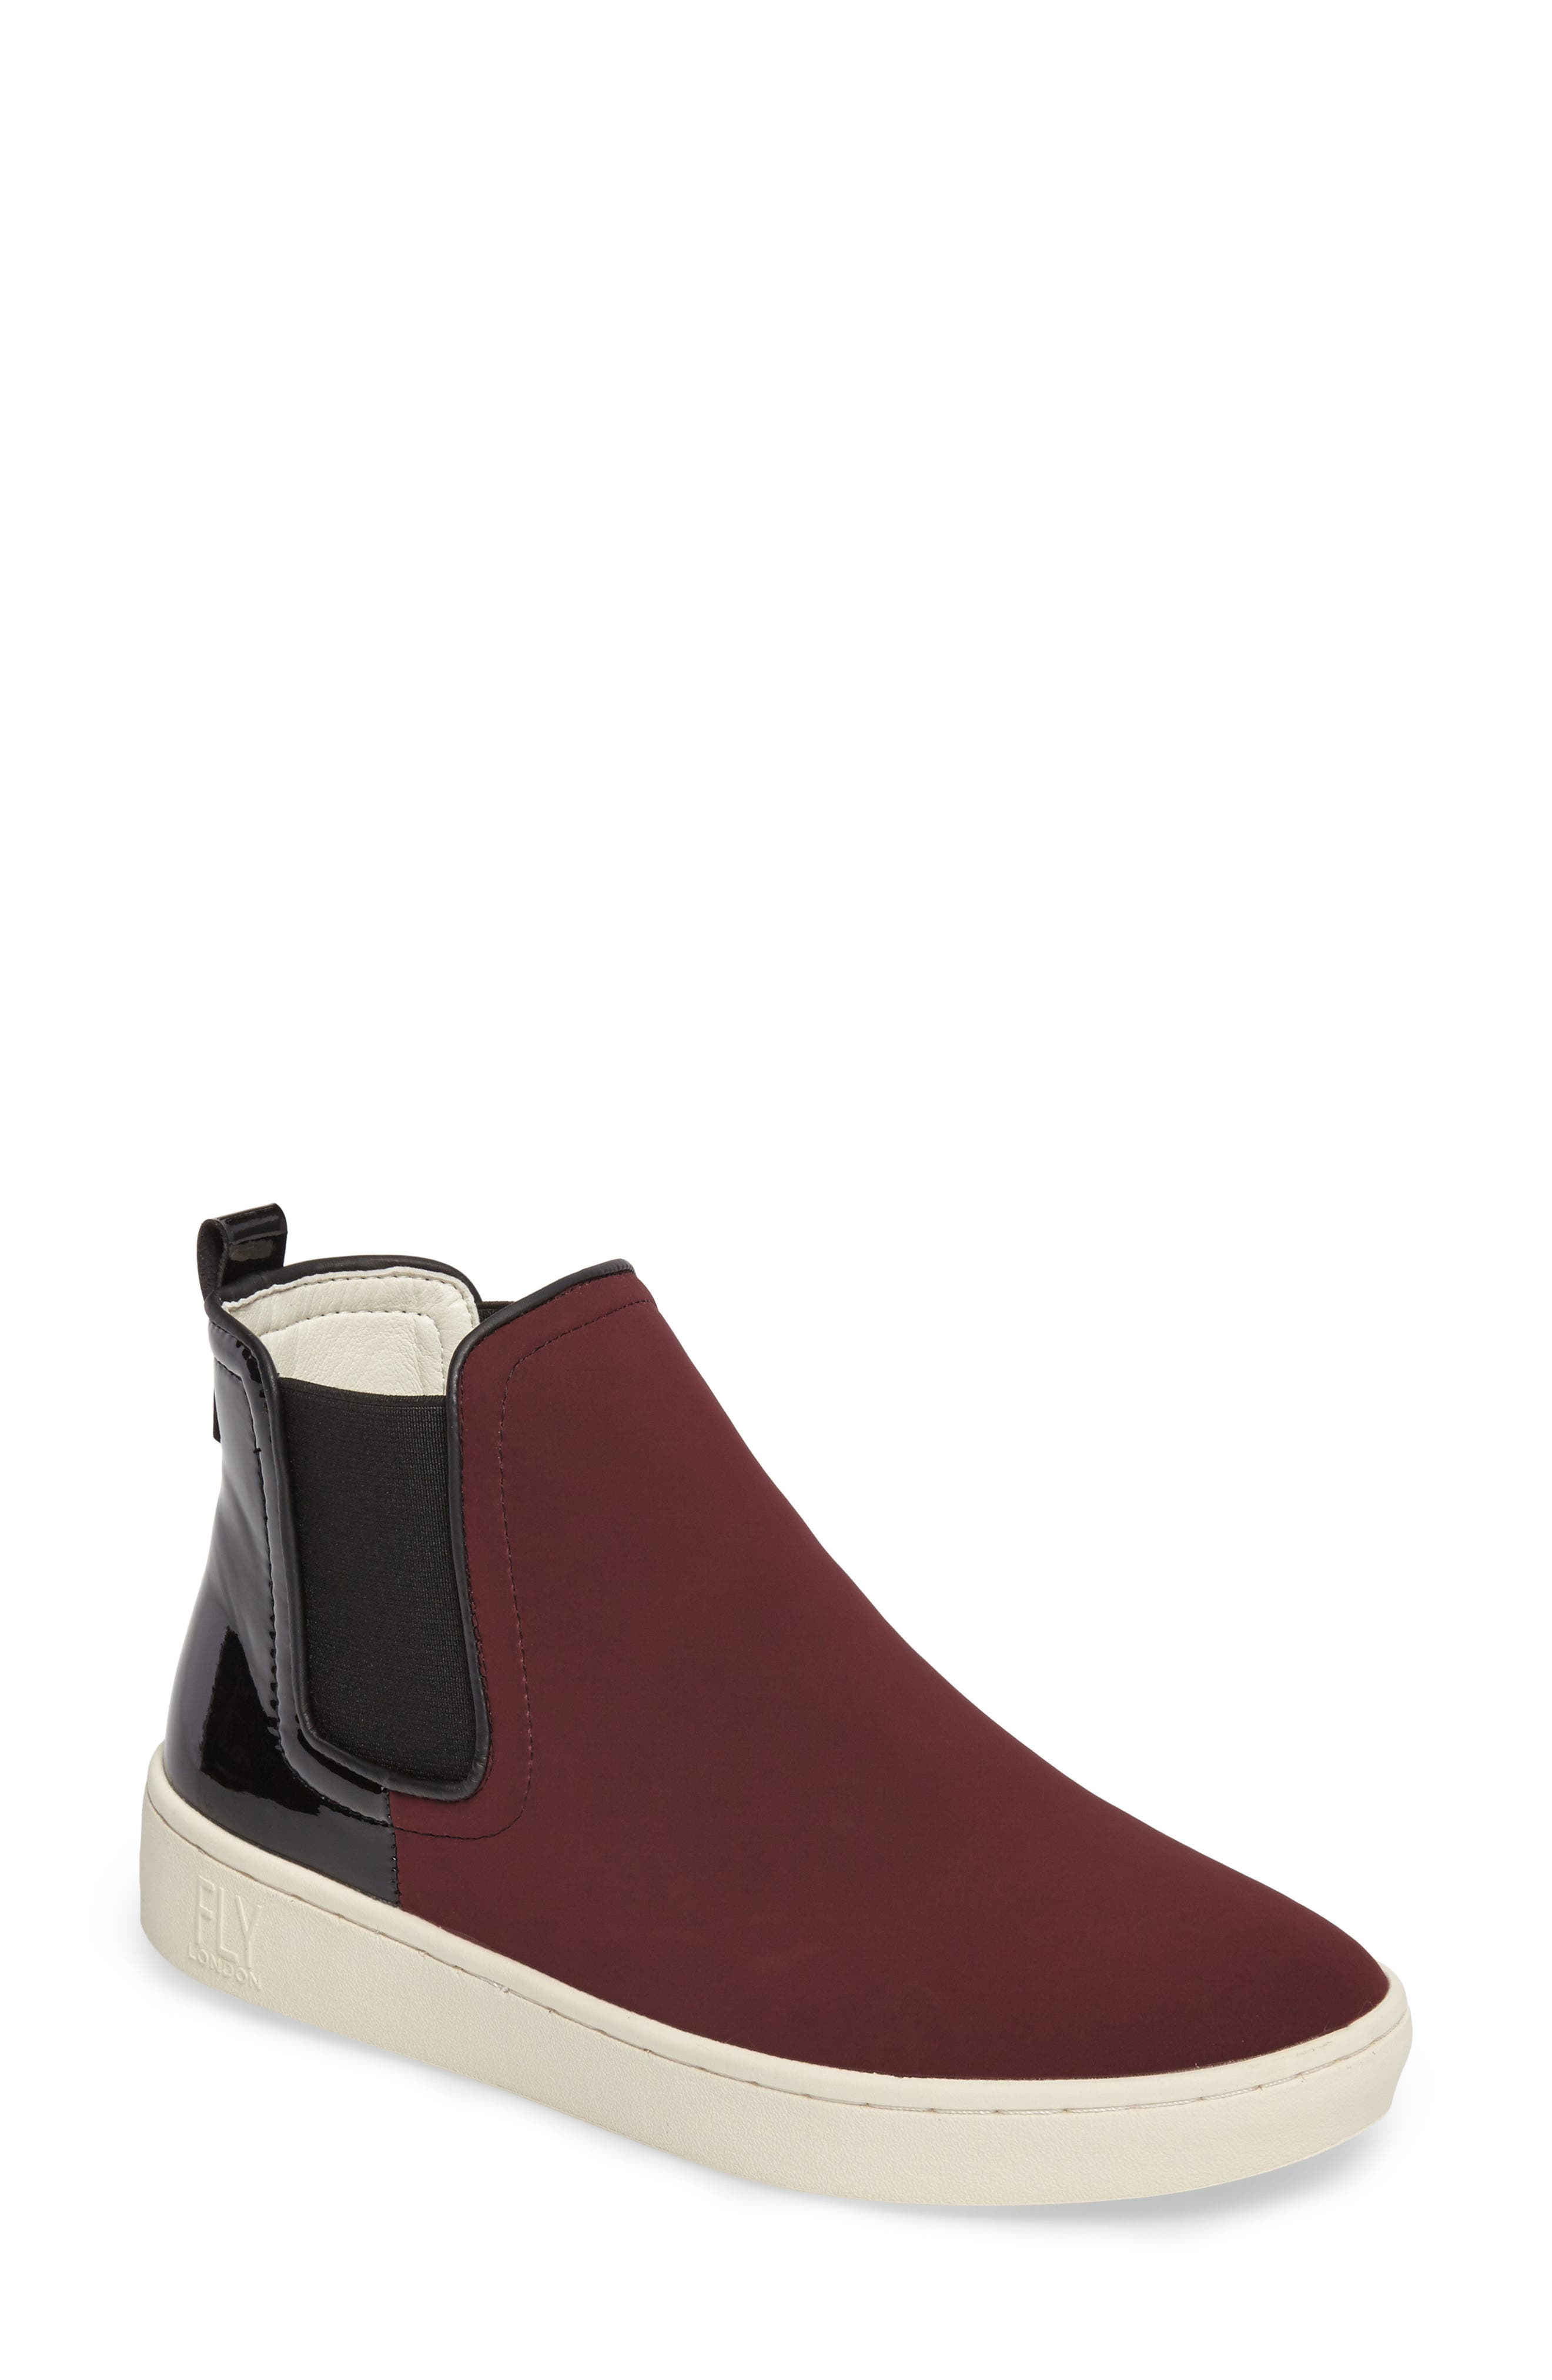 'Mabs' Slip-On Platform Sneaker,                         Main,                         color, Bordeaux/ Black Leather